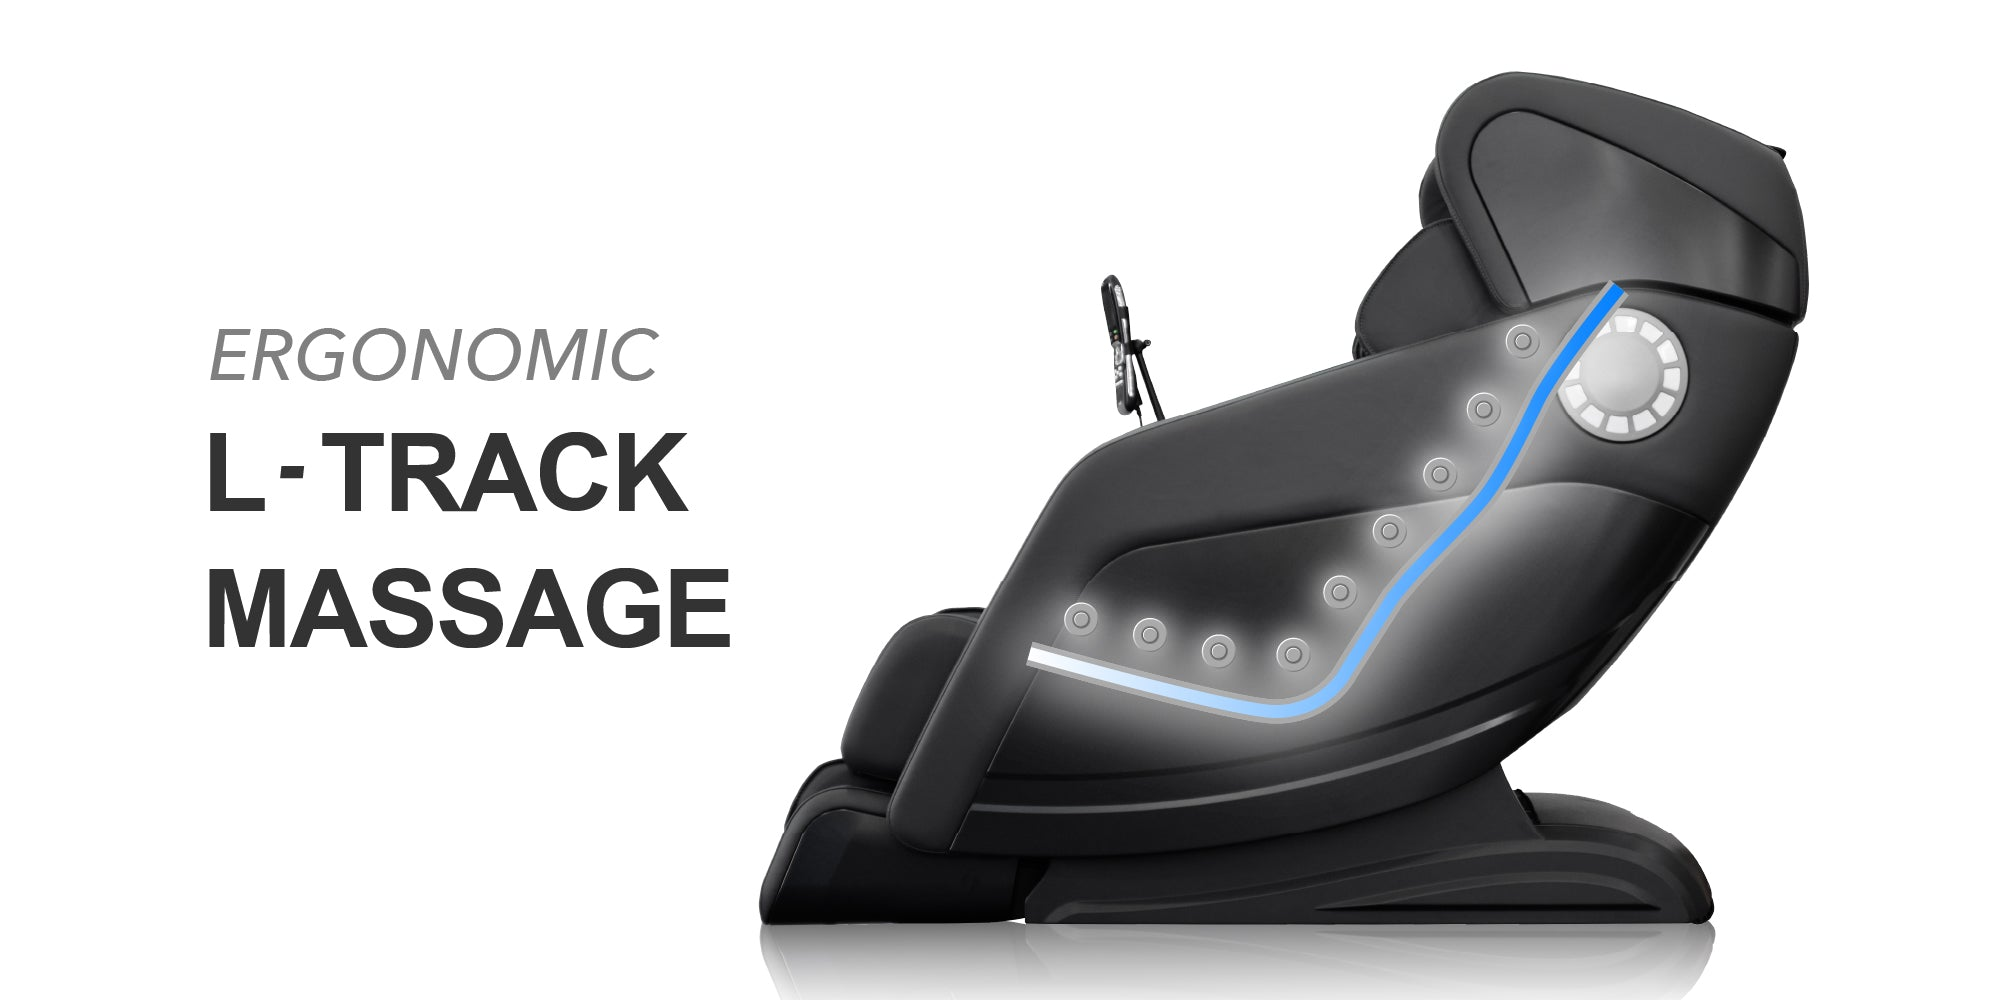 ergonomic s-track massage